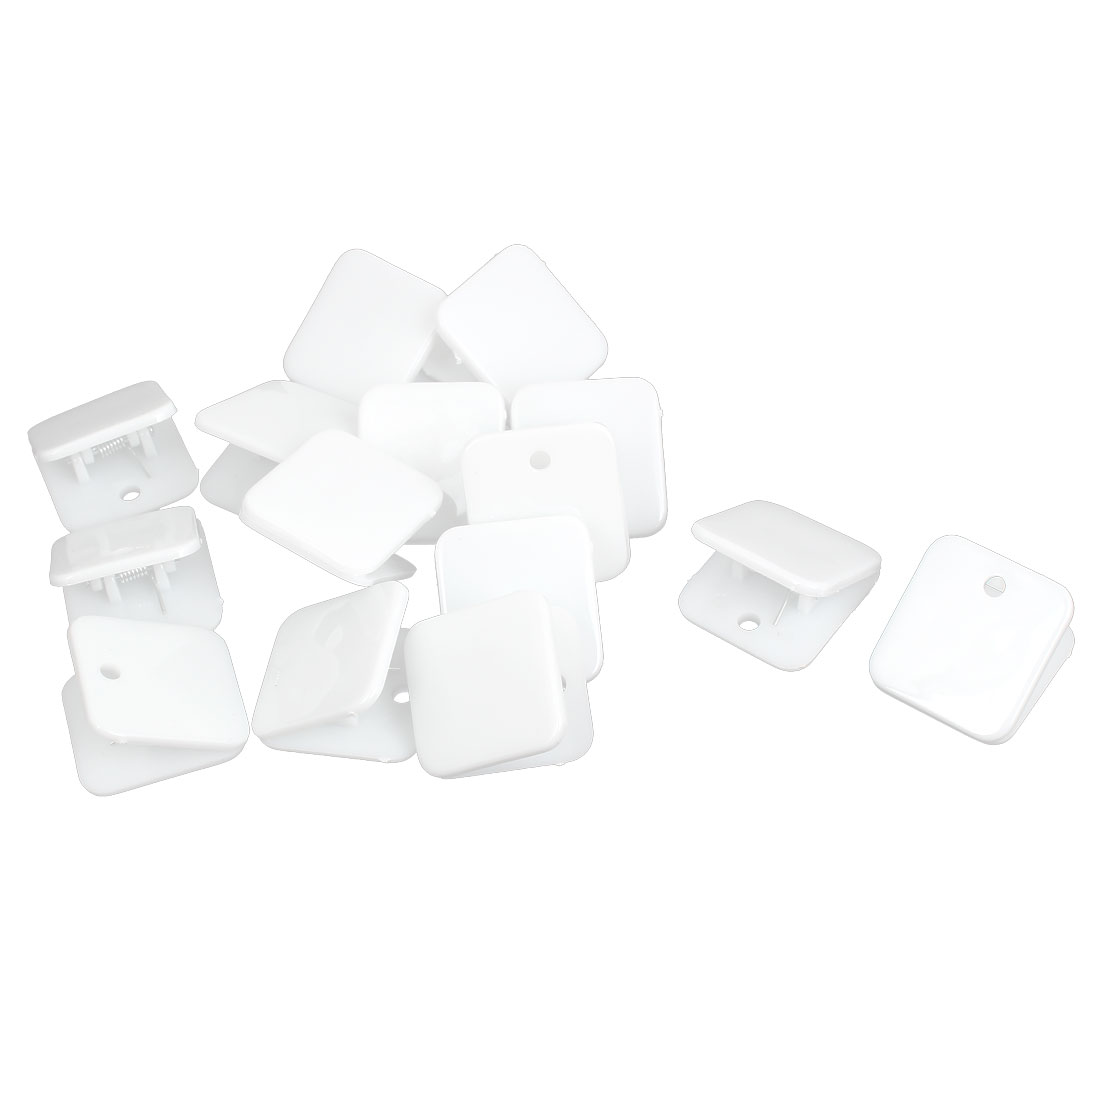 Plastic Square Spring Loaded Paper Document Memo Note Stationery Clip White 15Pcs